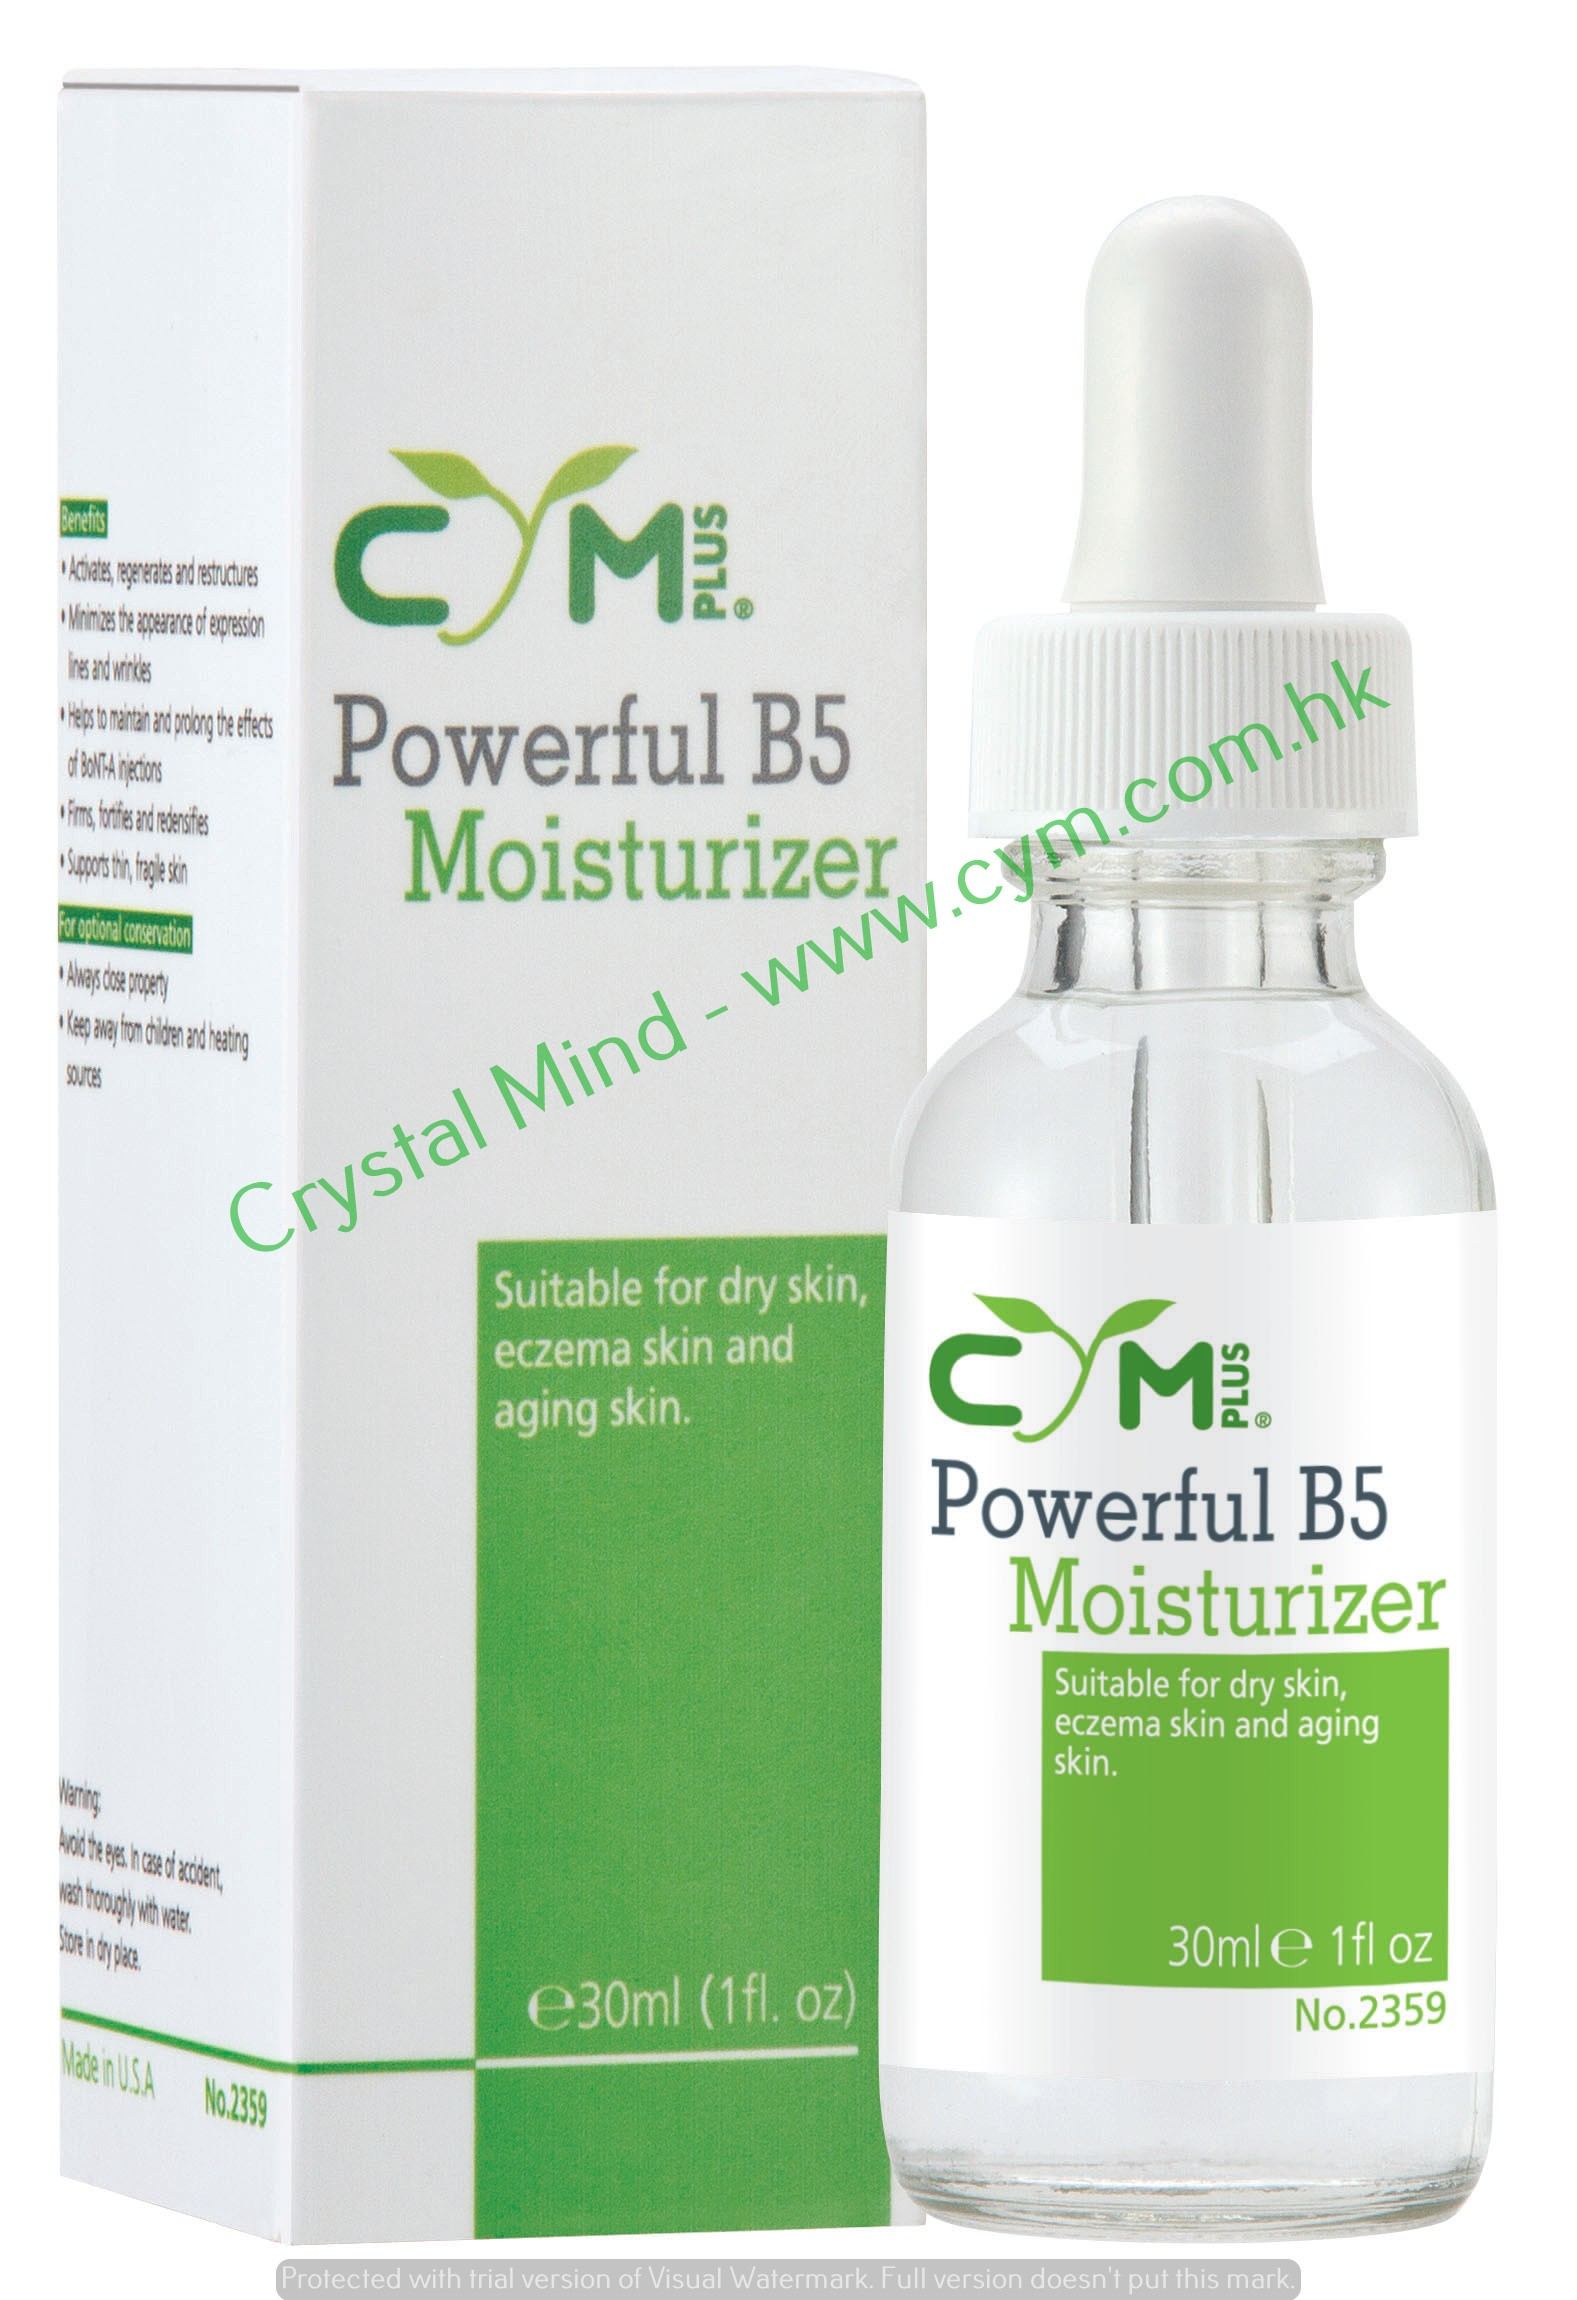 Powerful B5 Moisturizer強效B5保濕精華 - 30 ml - 2359